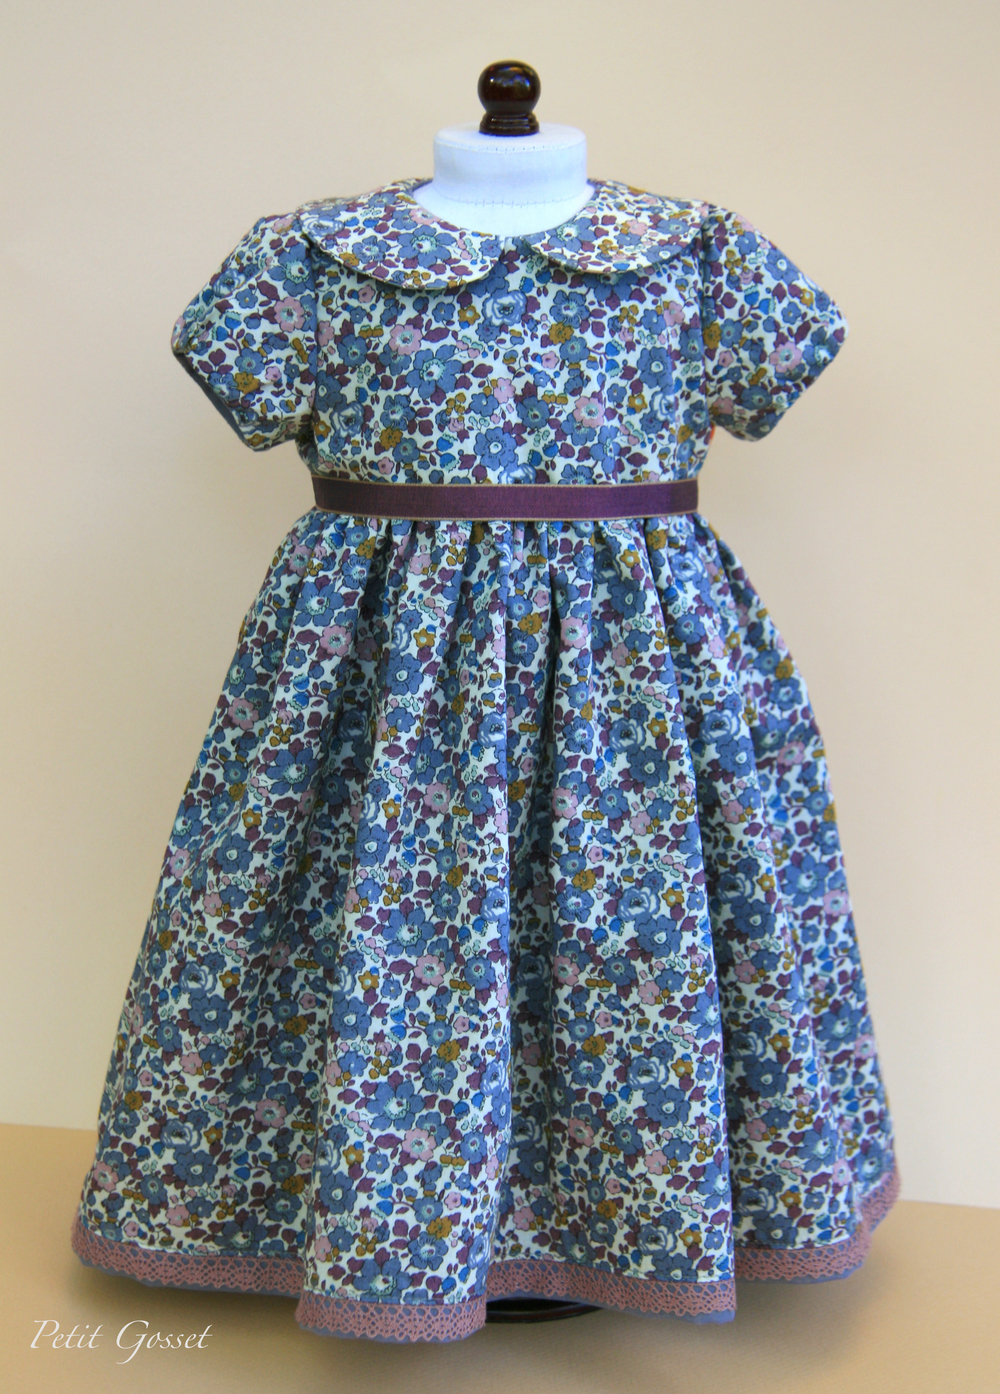 This beautiful floral dress is made with Liberty of London cotton lawn and fully lined with Swiss cotton voile. Opens in the back with nickel-free snaps.